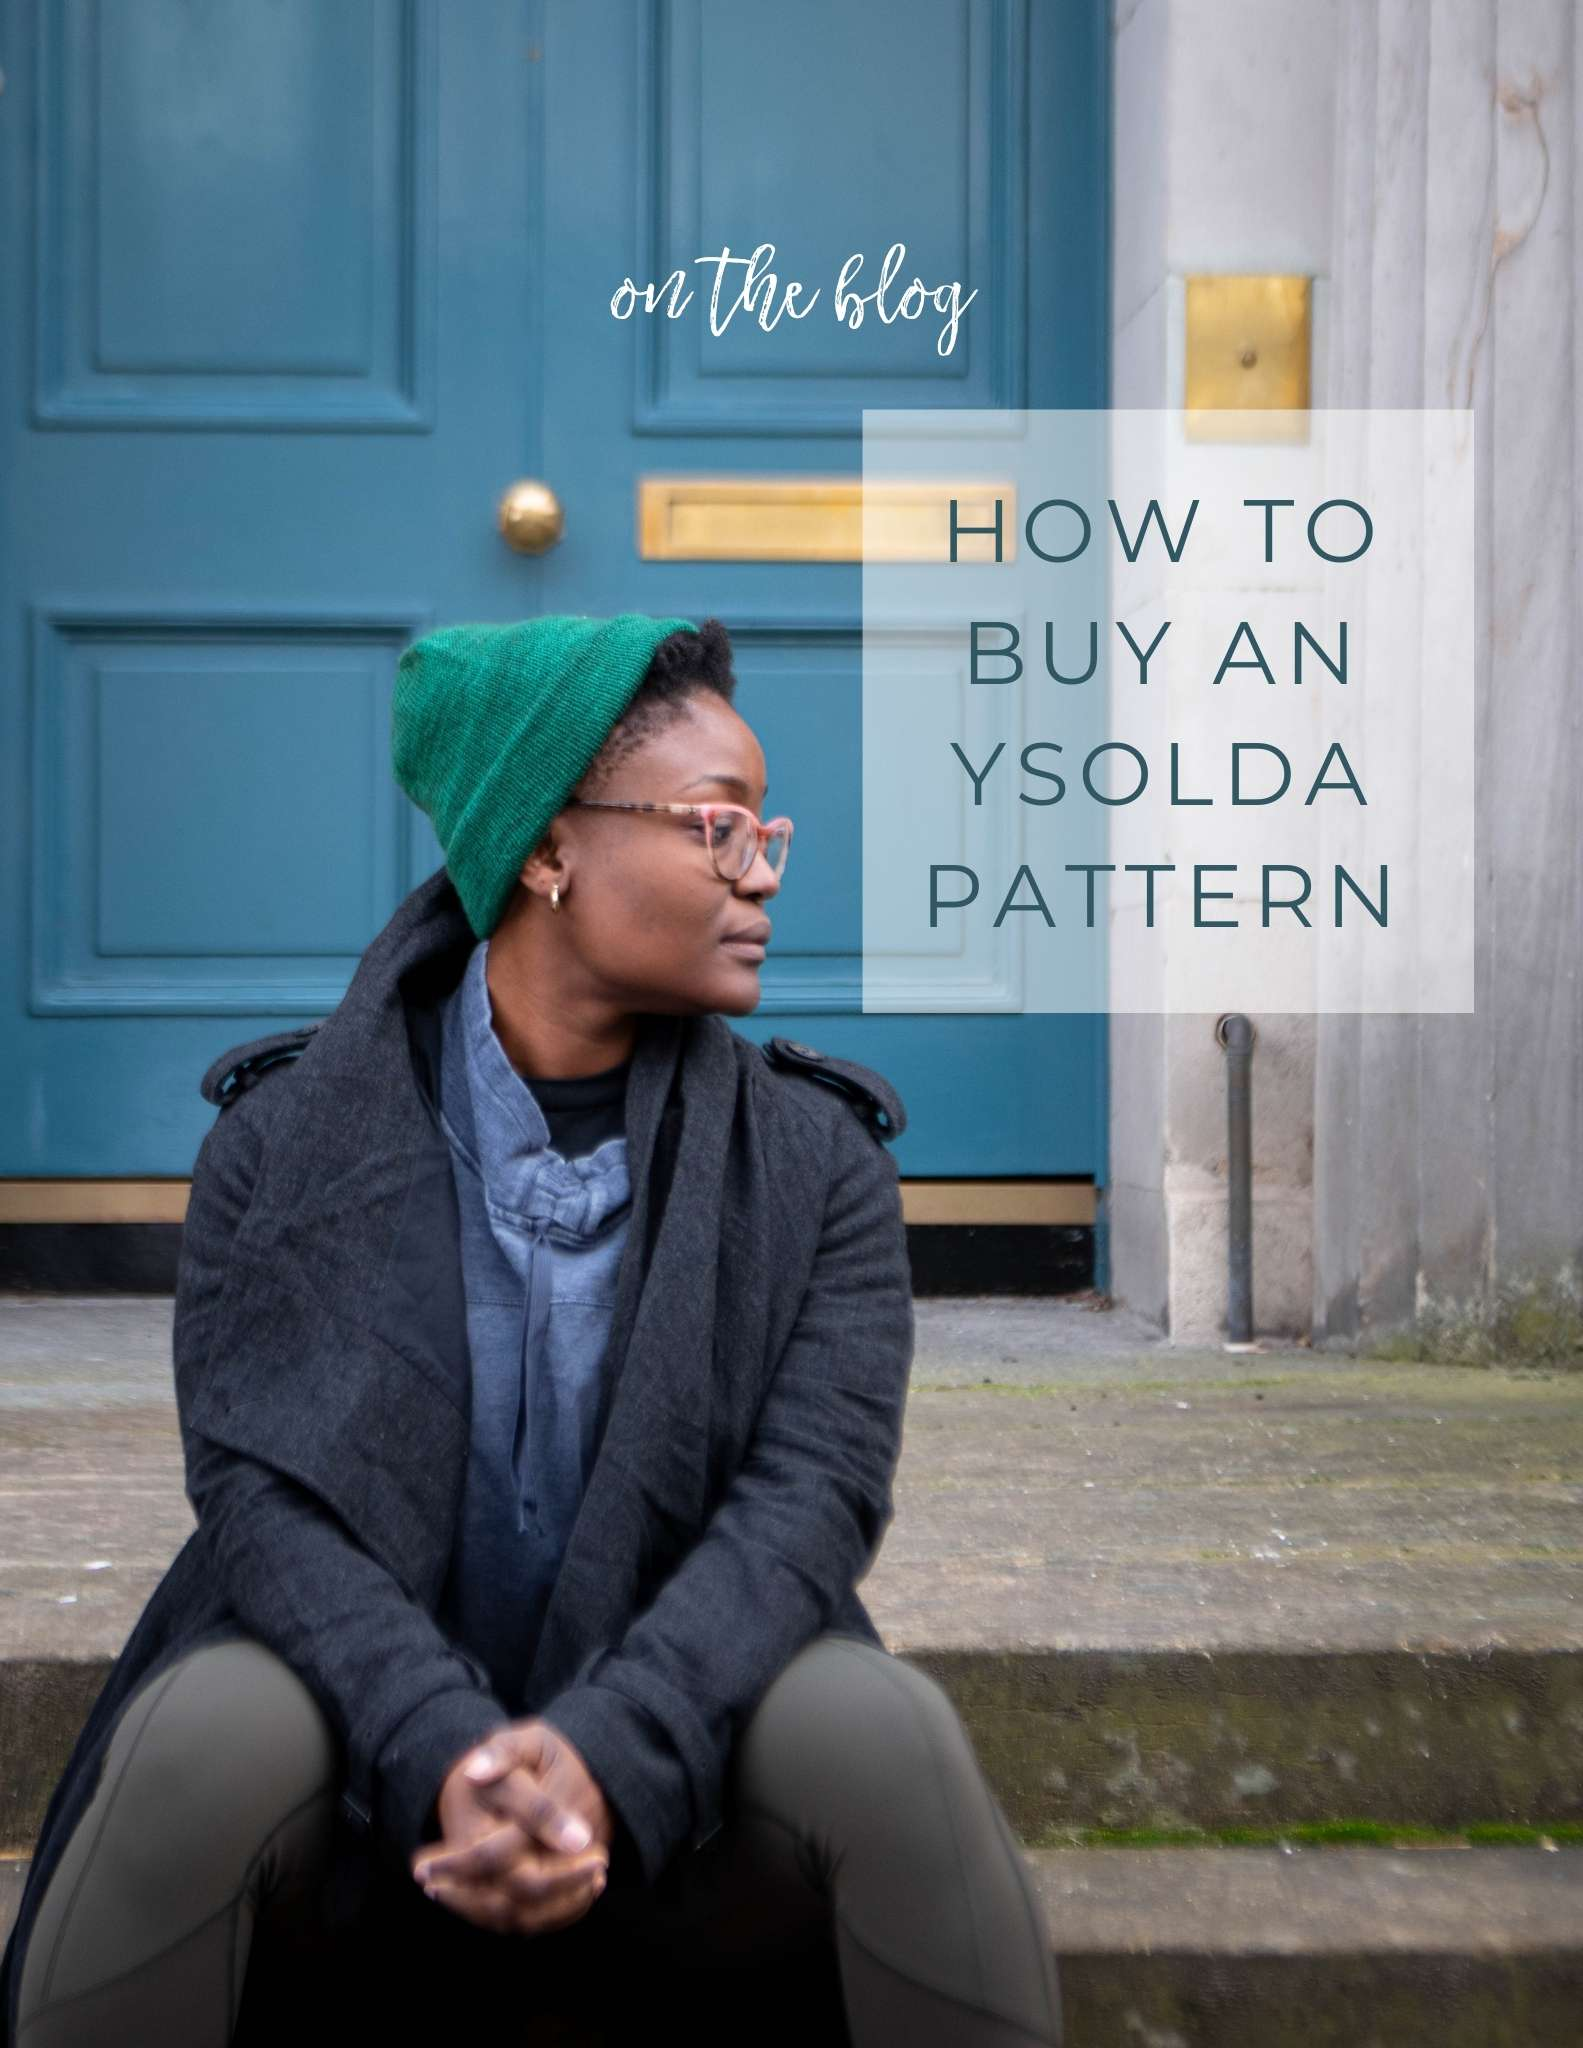 How to buy an Ysolda pattern